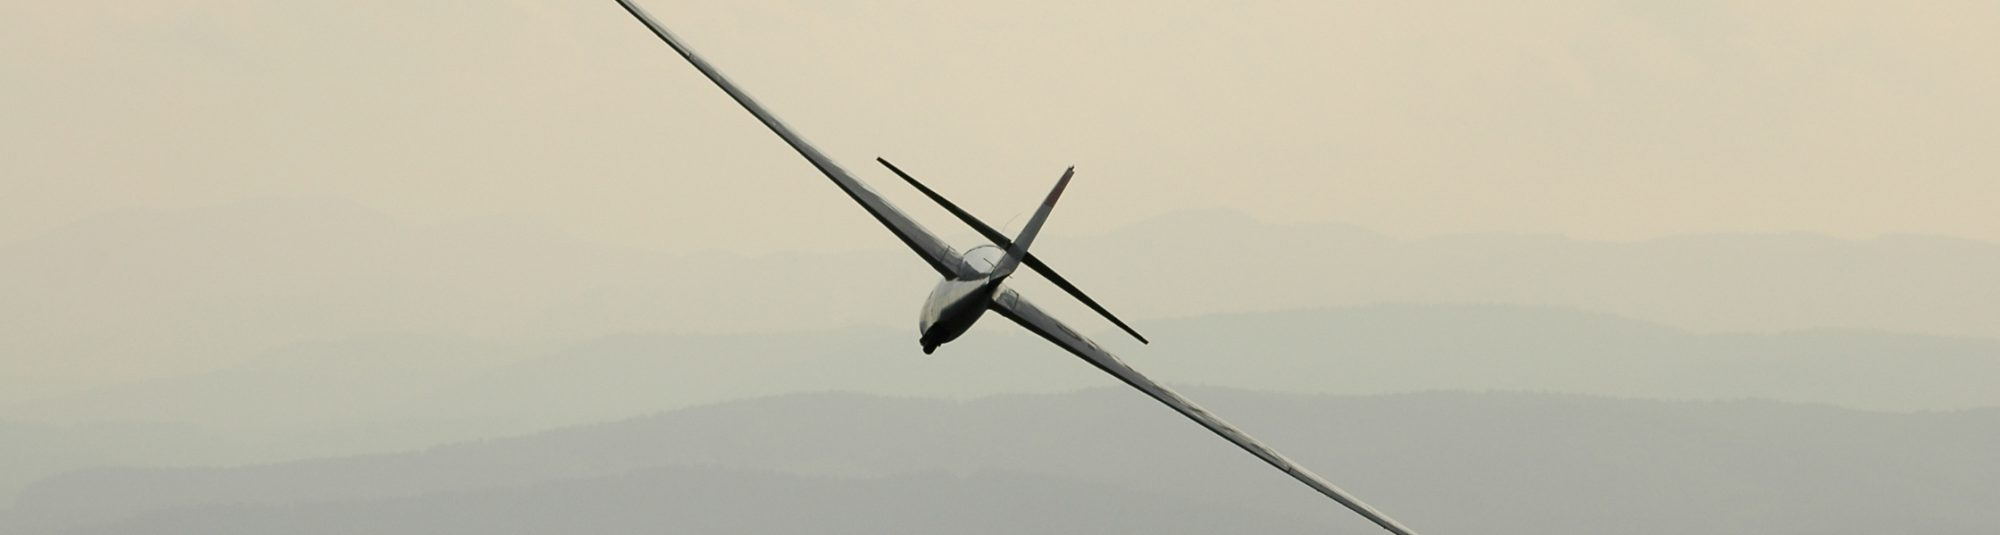 AKOYA aircraft has an aerodynamics similar to some gliders